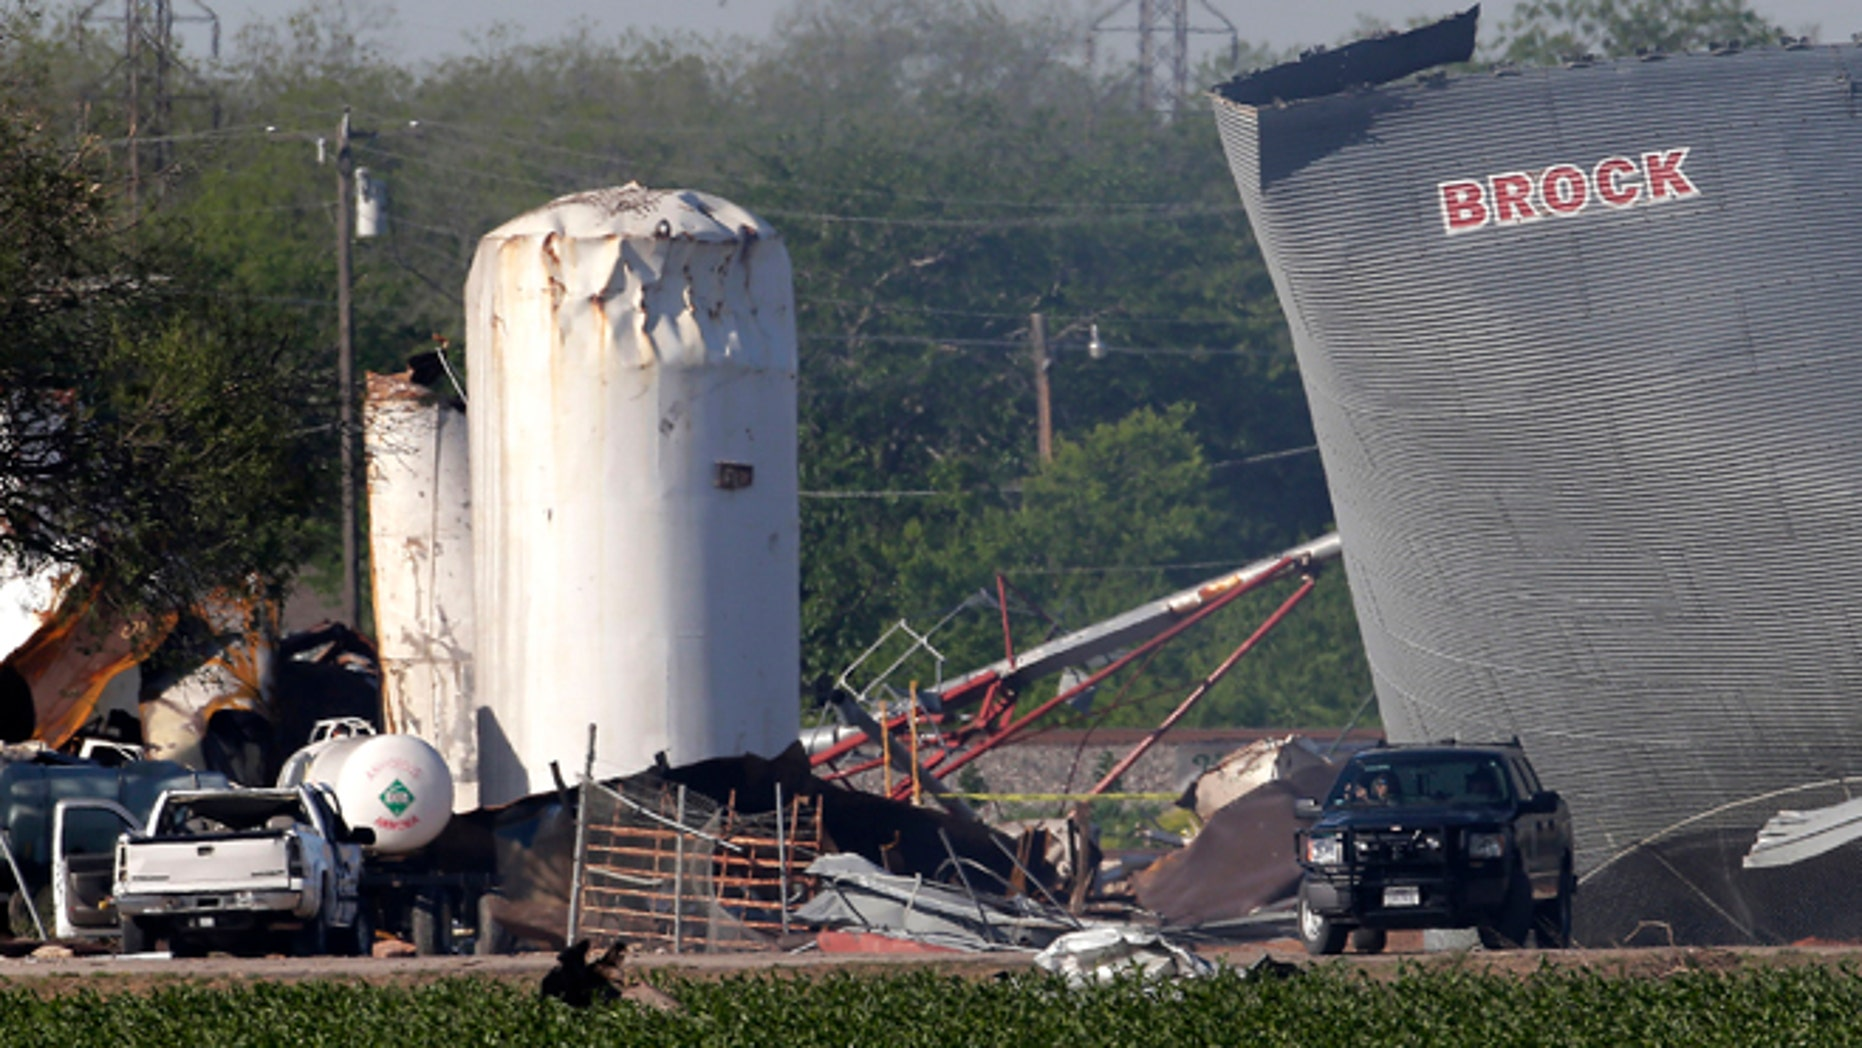 April 20, 2013: Law enforcement personnel patrol the scene three days after an explosion at a fertilizer plant in West, Texas. The massive explosion at the West Fertilizer Co. Wednesday night killed at least 14 people and injured more than 160.